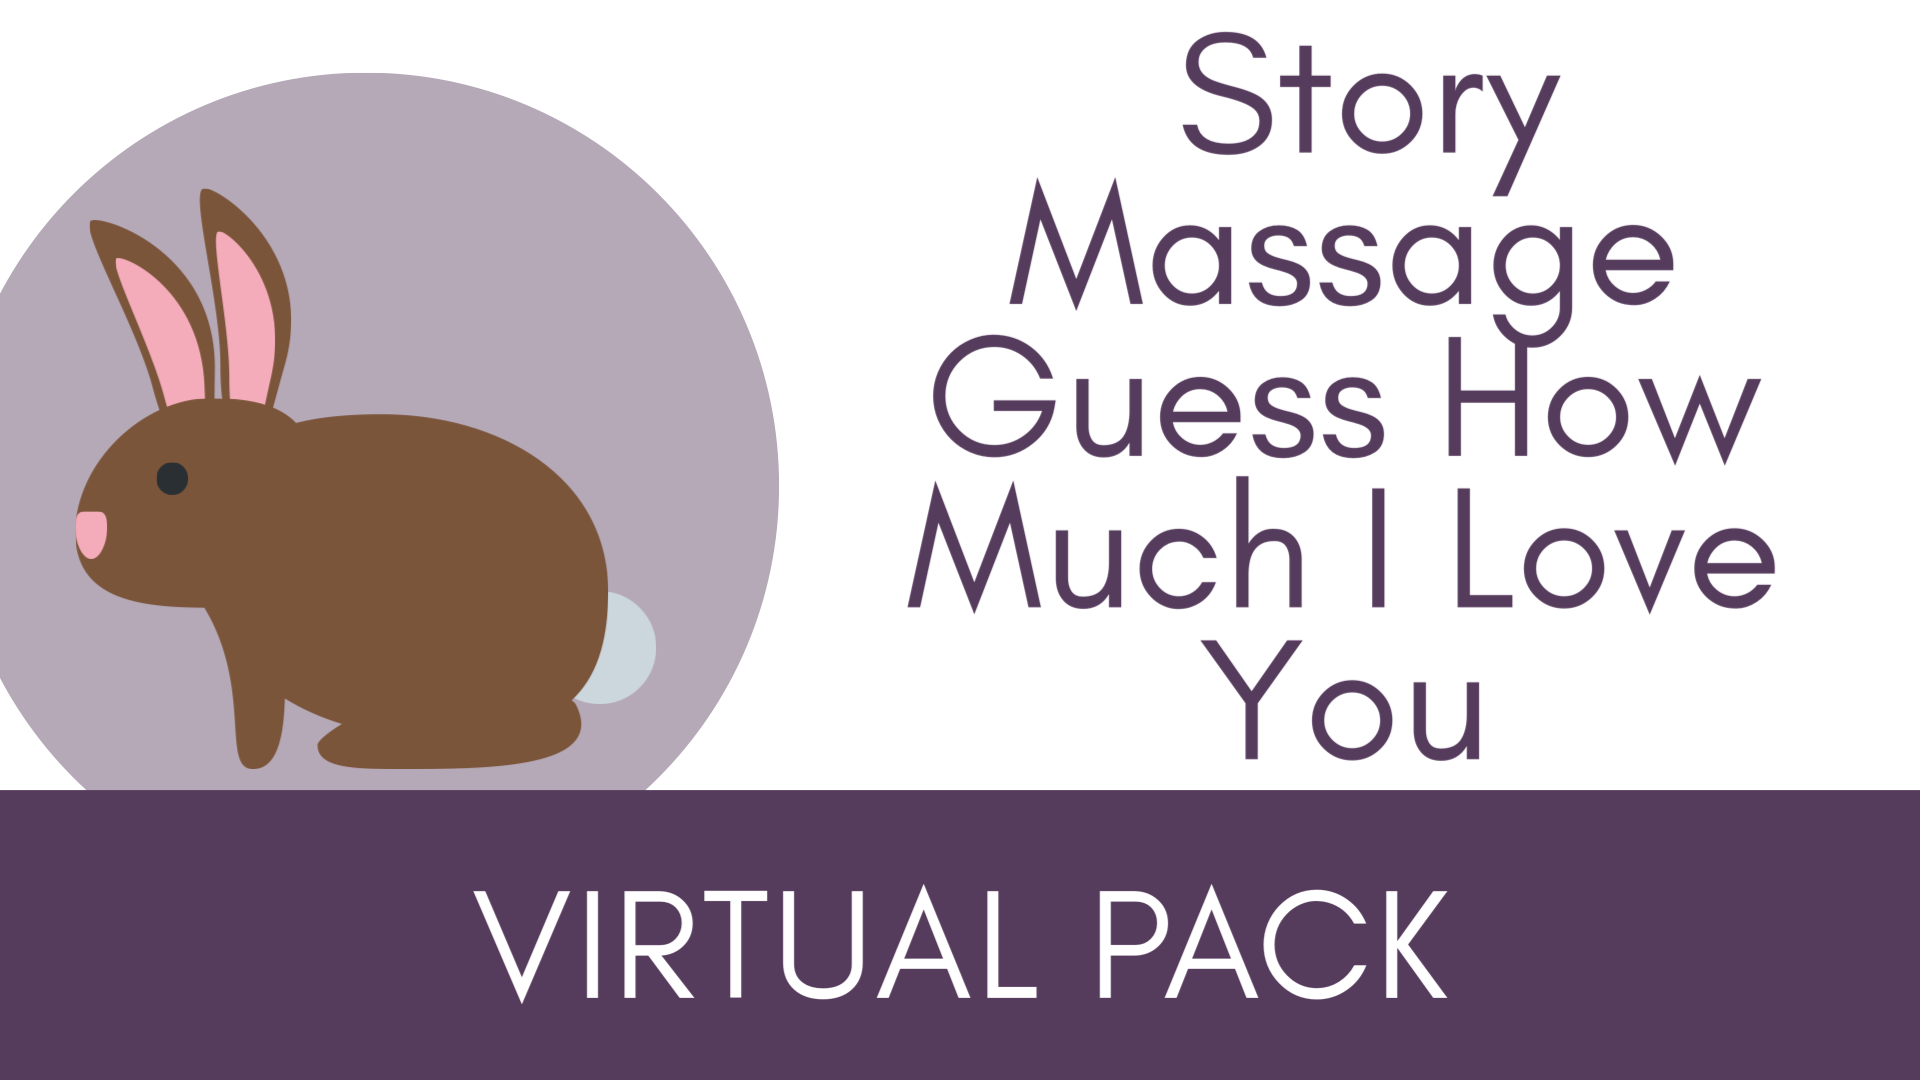 Story Massage Guess How Much I Love You Virtual Packs